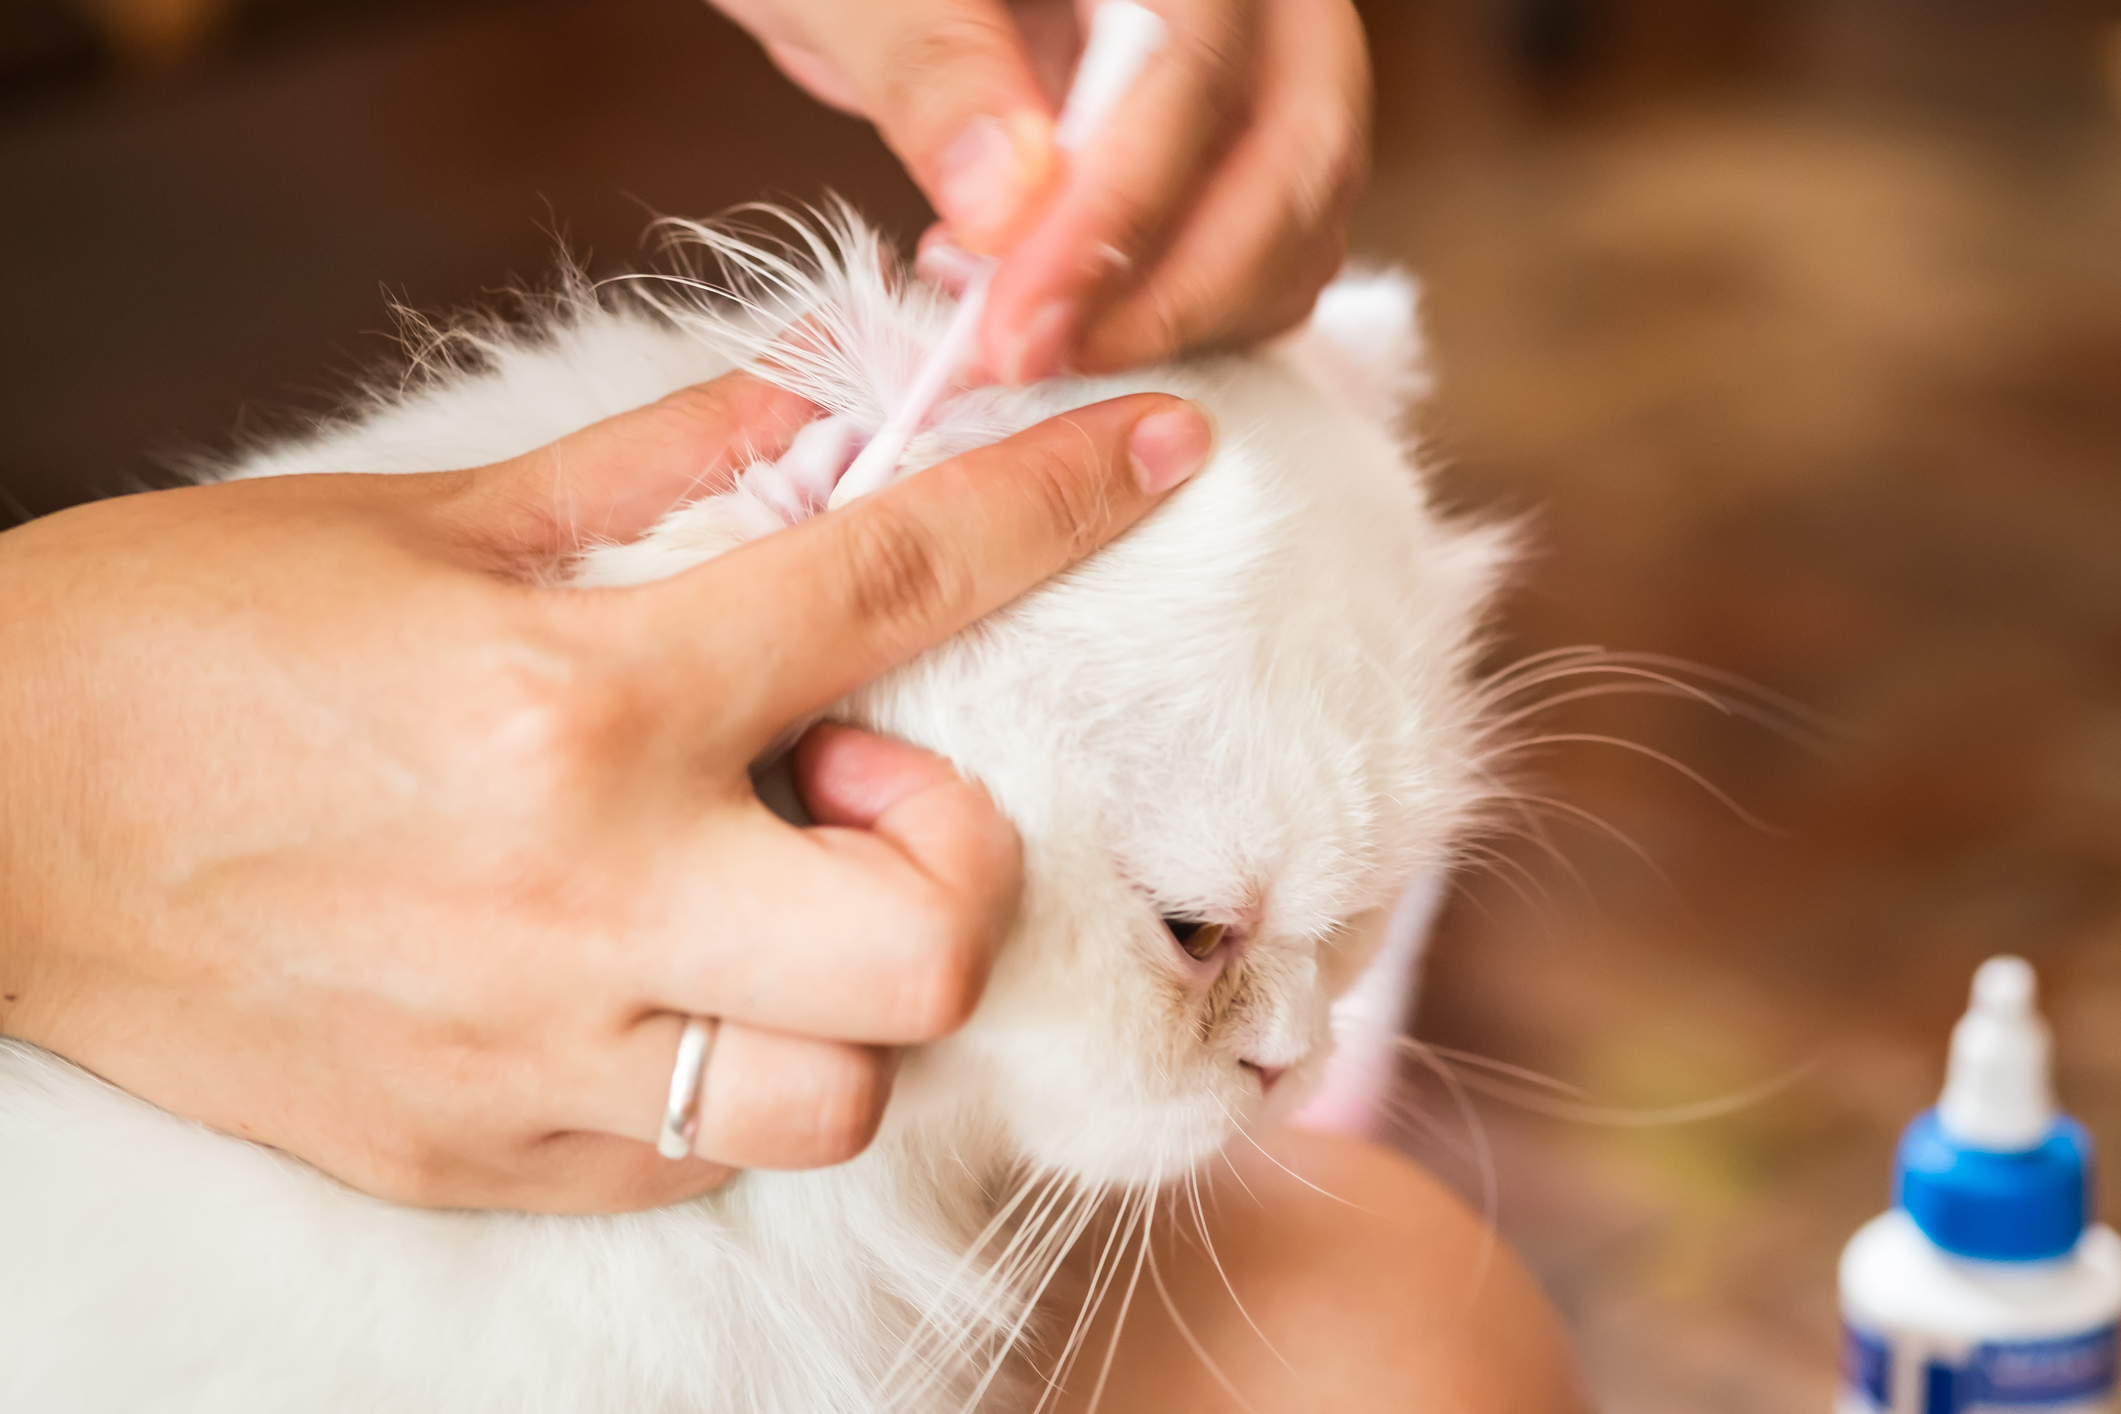 Home Remedies – Dog Ear Mites Can Be Treated Naturally